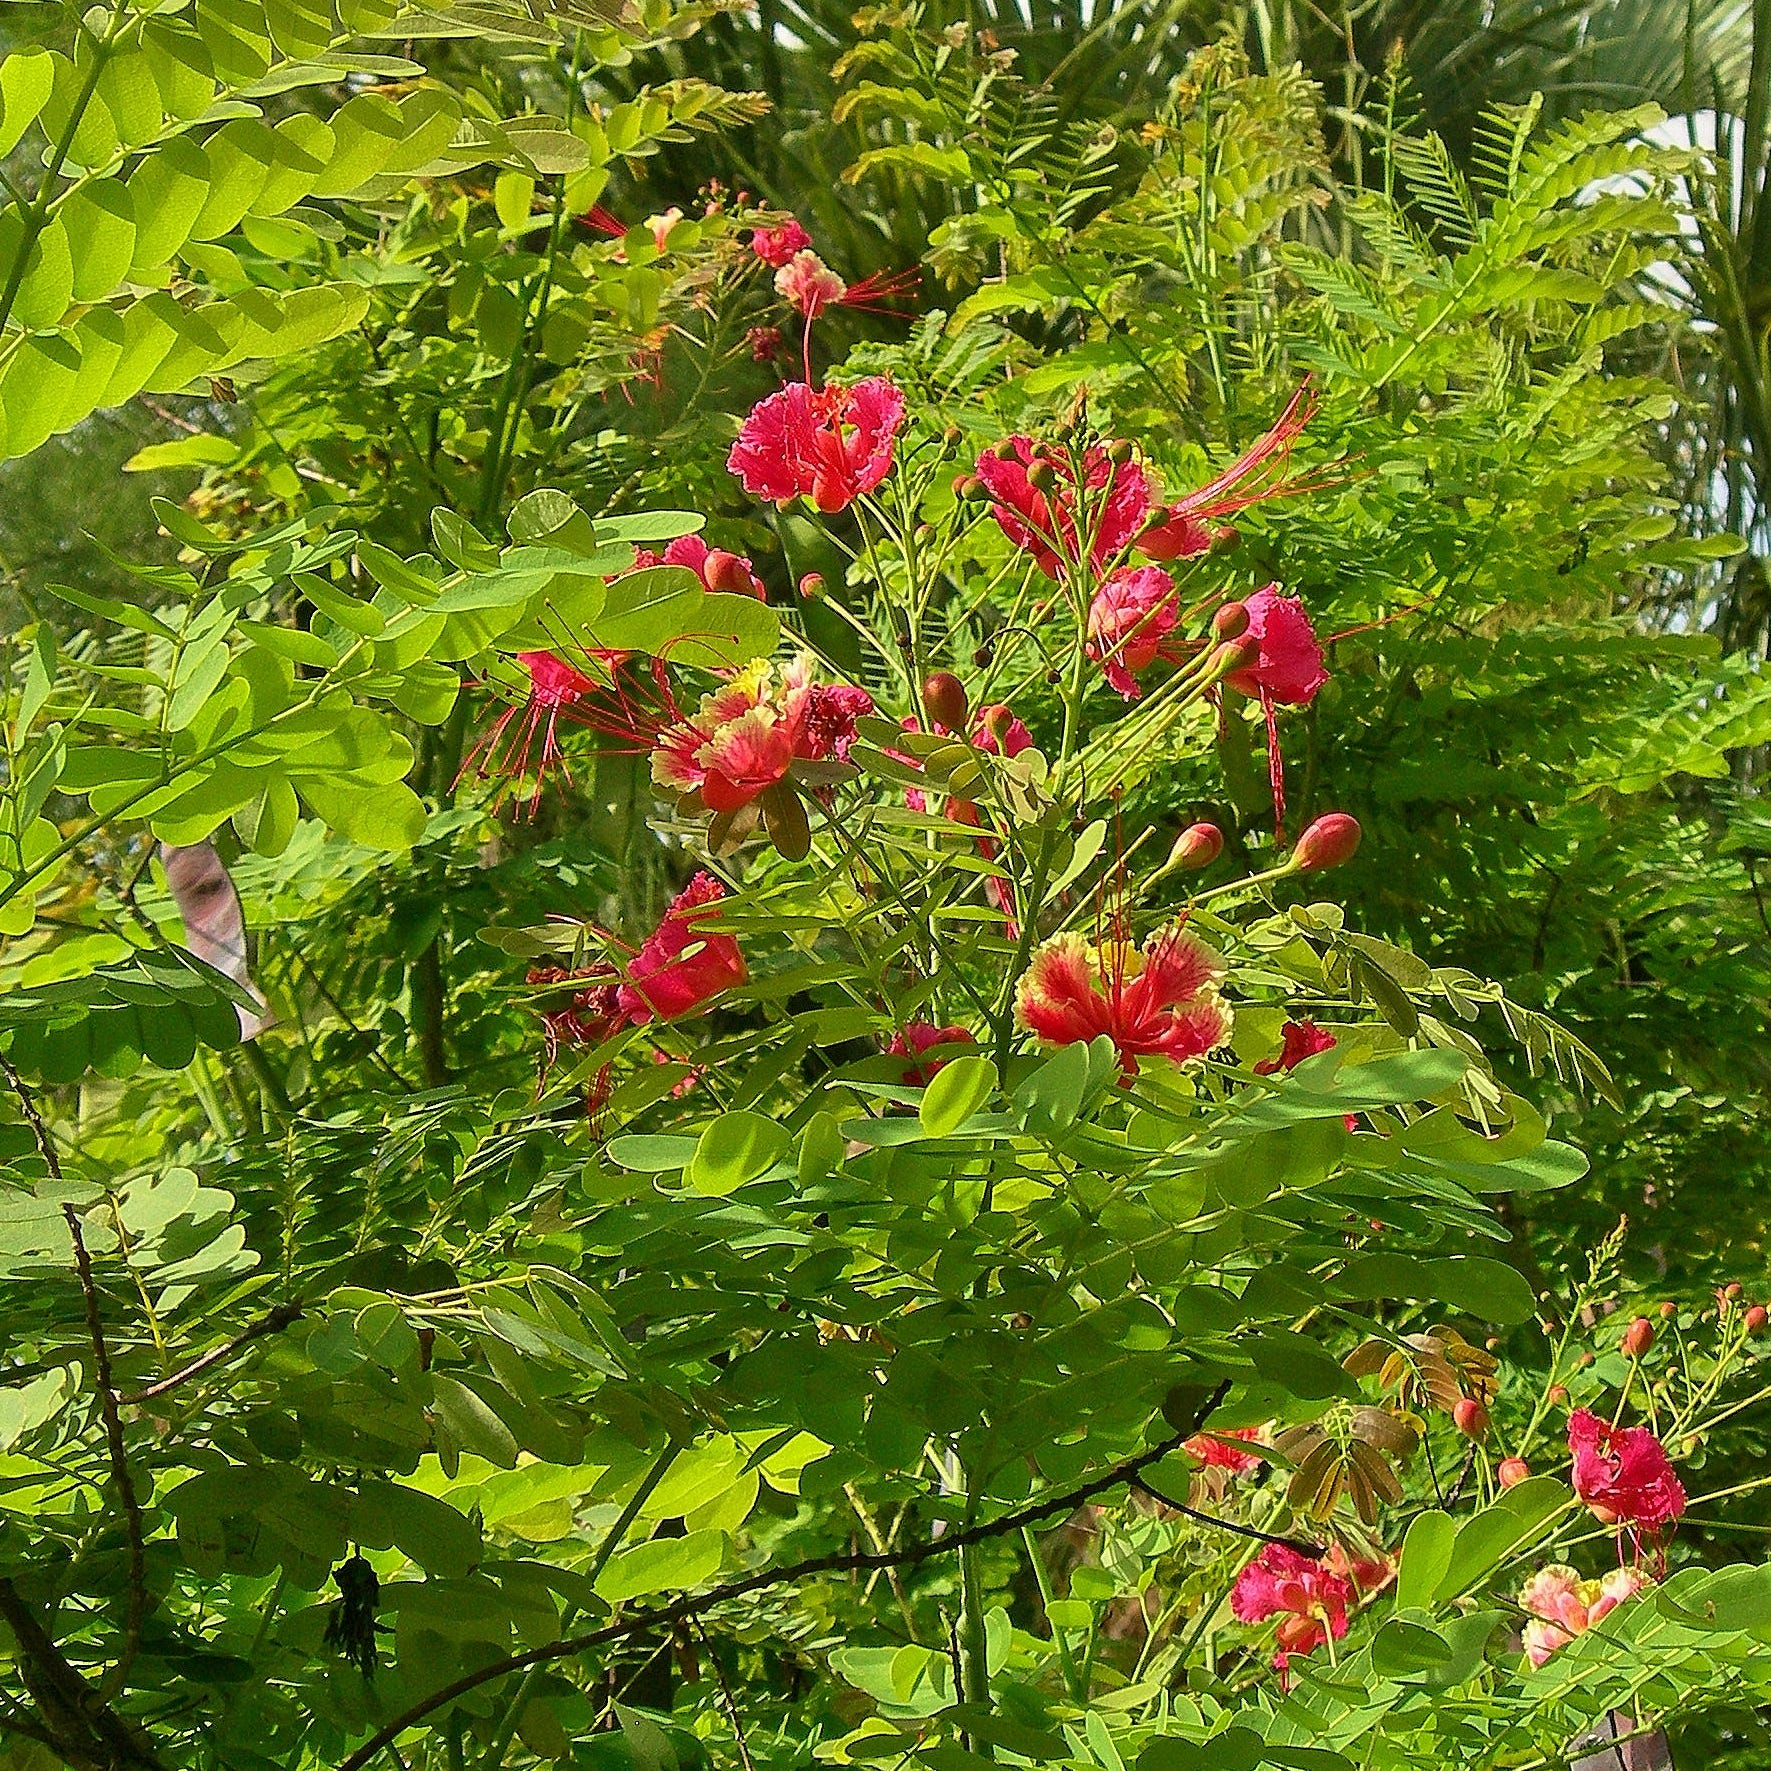 January good time for planting trees, Pride-of-Barbados great choice for small spaces